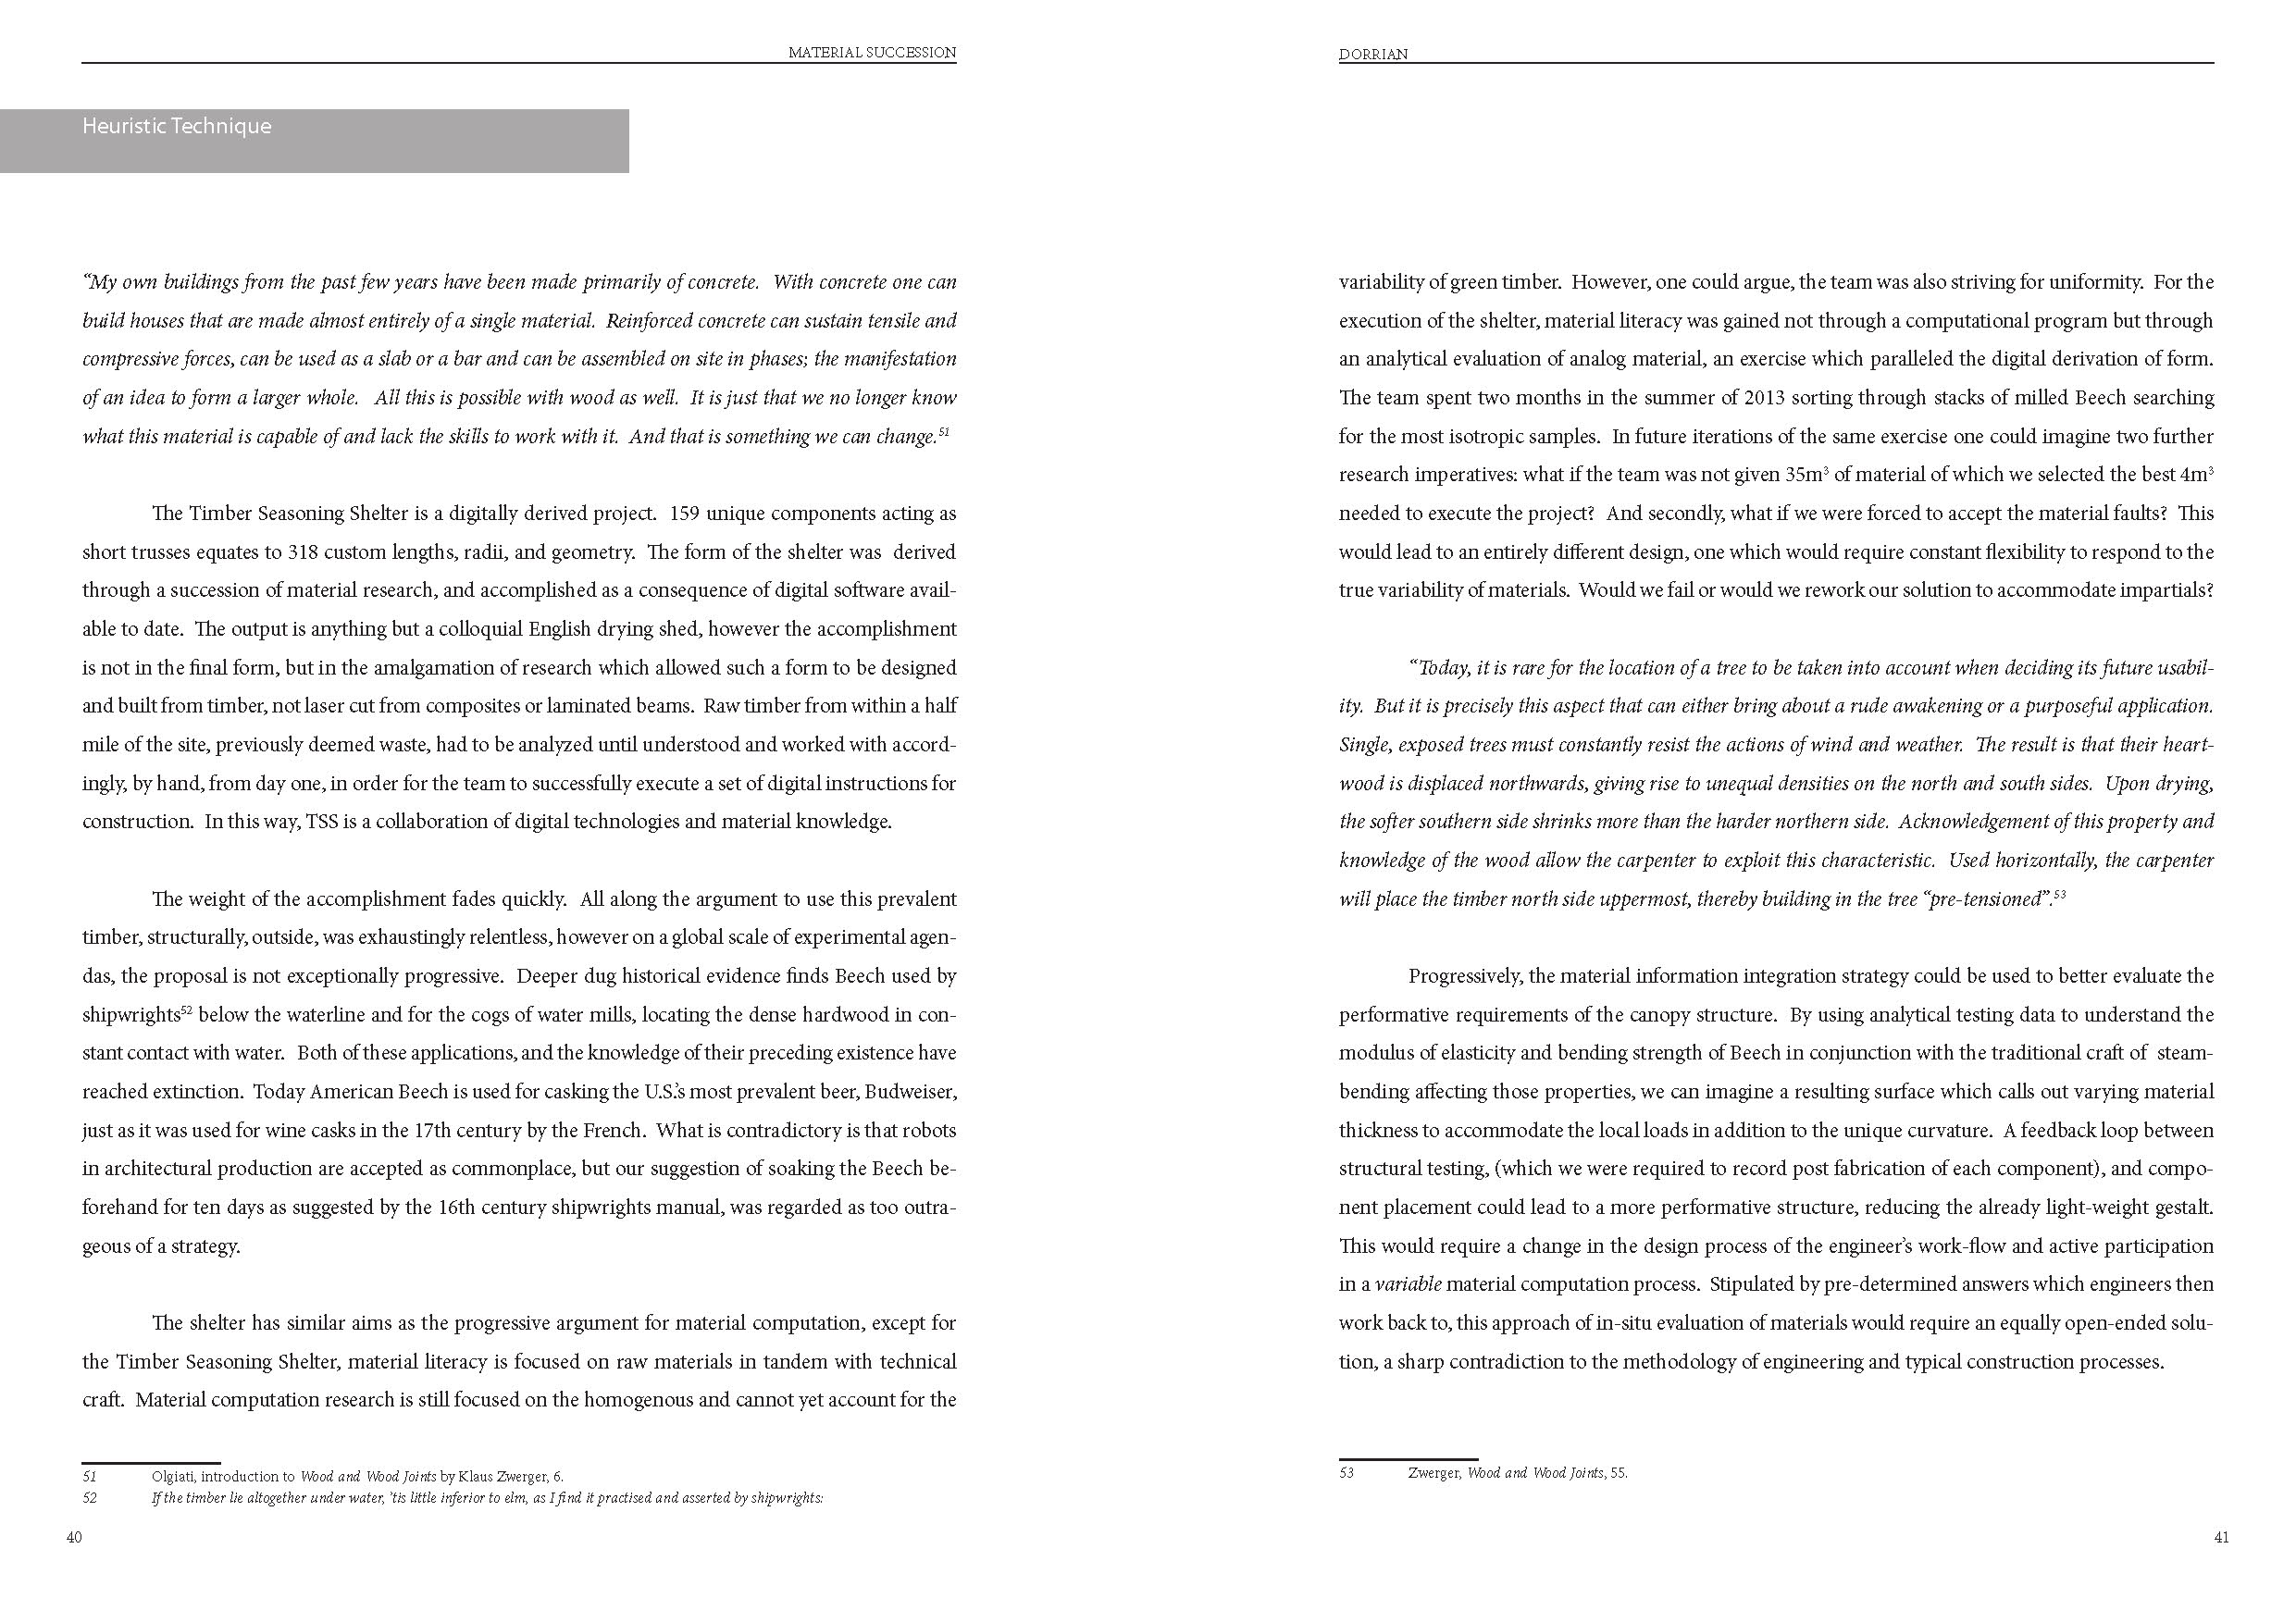 130131_Material SuccessionFORSUBMITTAL_Page_25.jpg